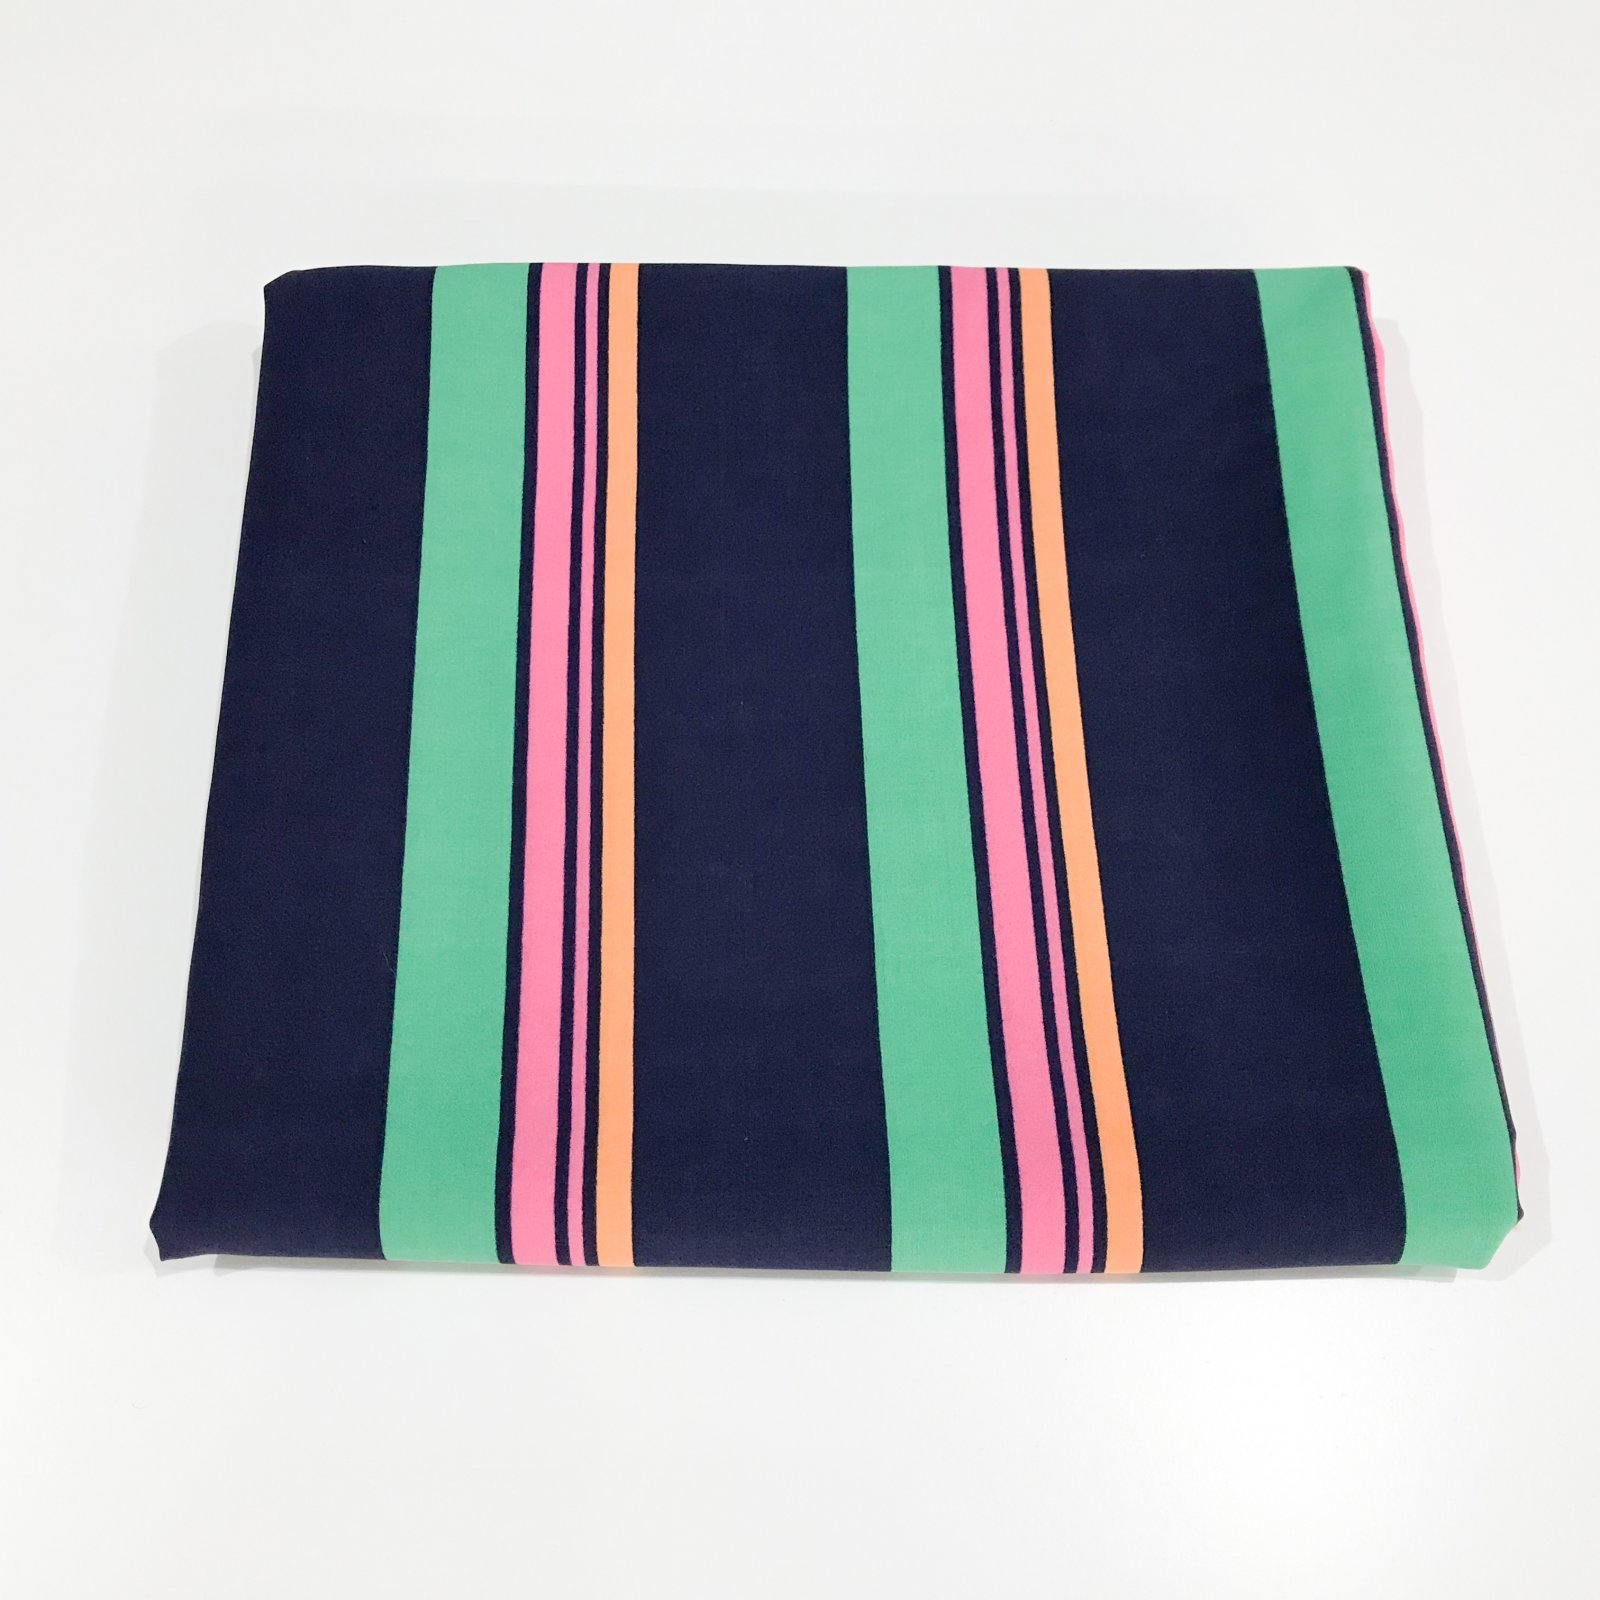 2 yards + 5 inches - Rayon Challis - Navy, Kelly Green, Pink and Orange Stripe